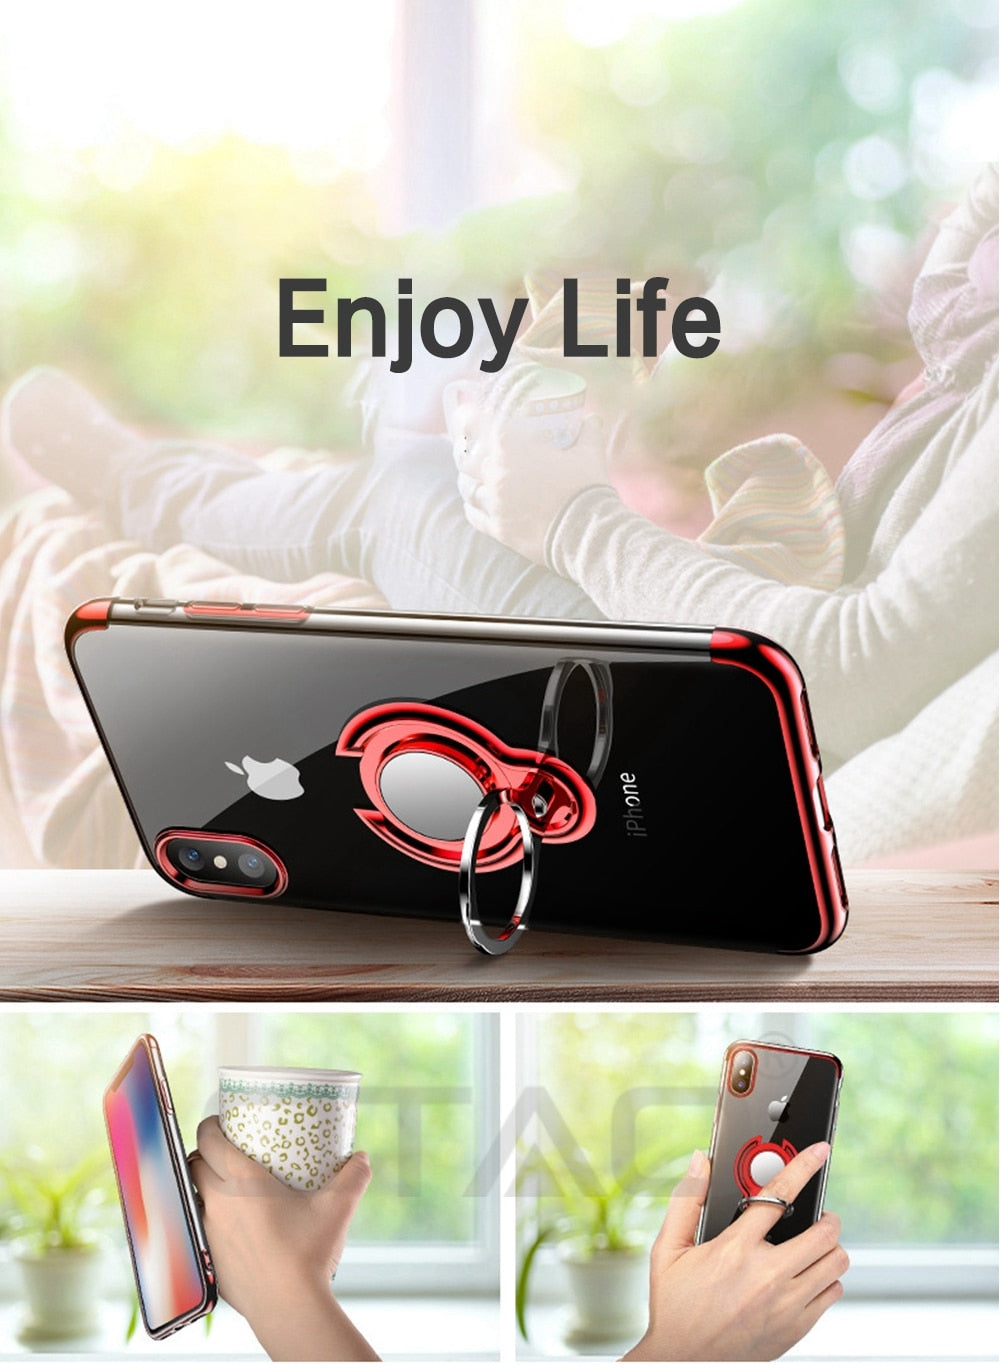 Ultra Thin Transparent iPhone Case For iPhone